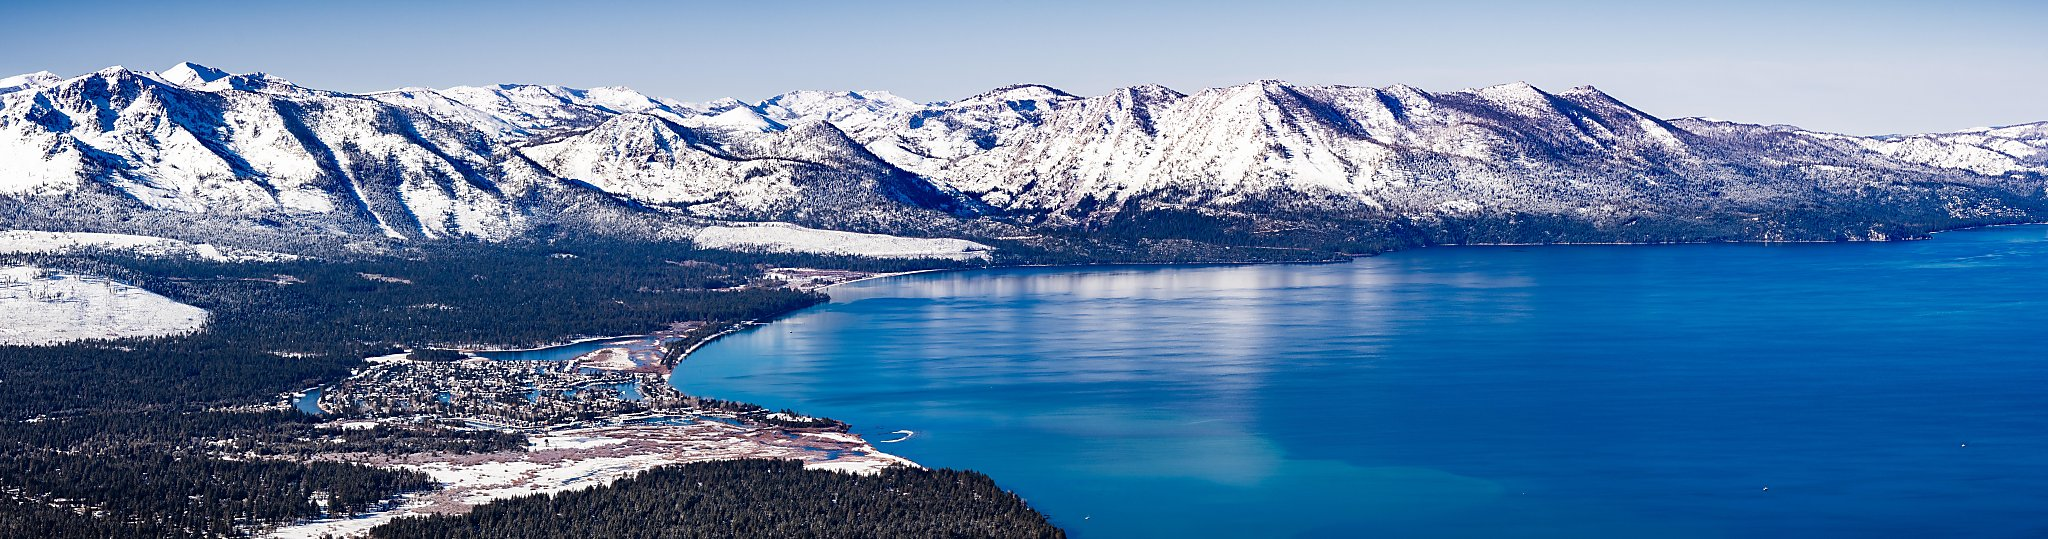 How an 'unripe snowpack' will impact Lake Tahoe this summer